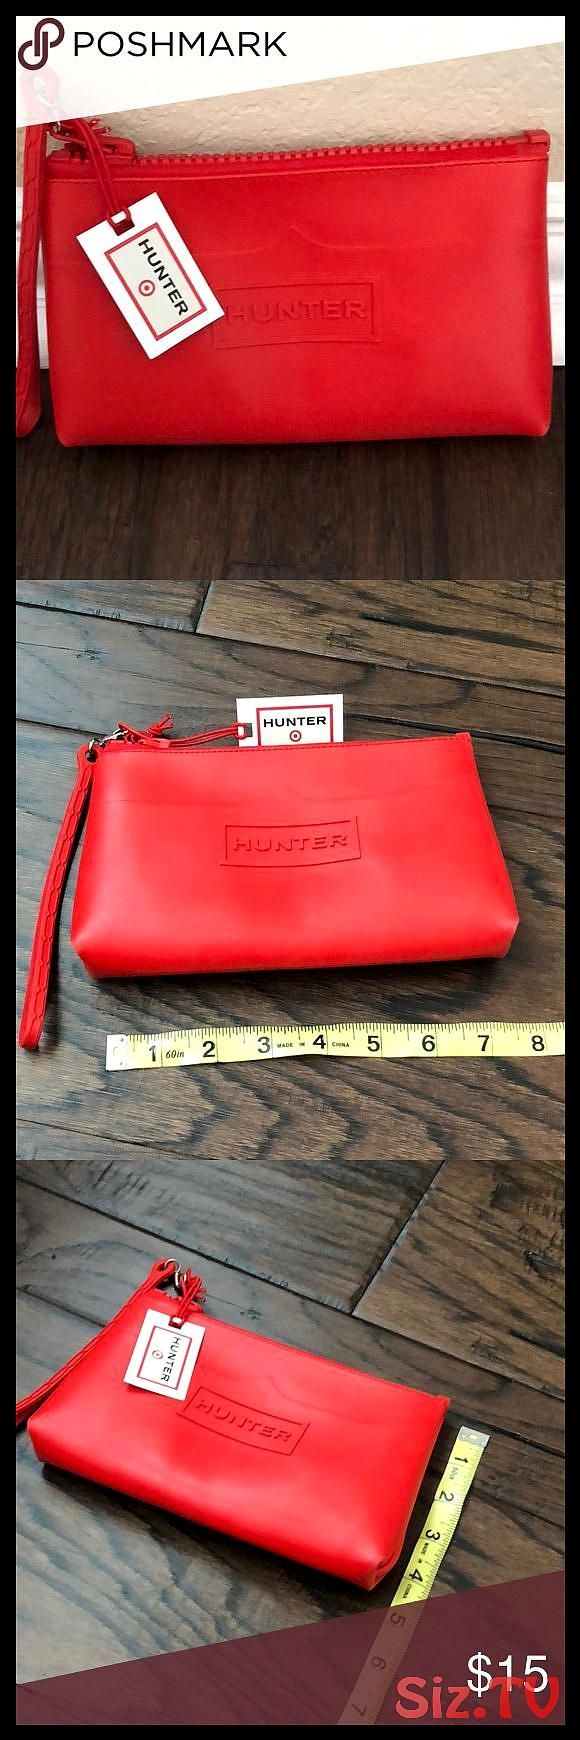 Red Hunter Wristlet Cutch Purse Target collection No flaws zipper works Tag stil